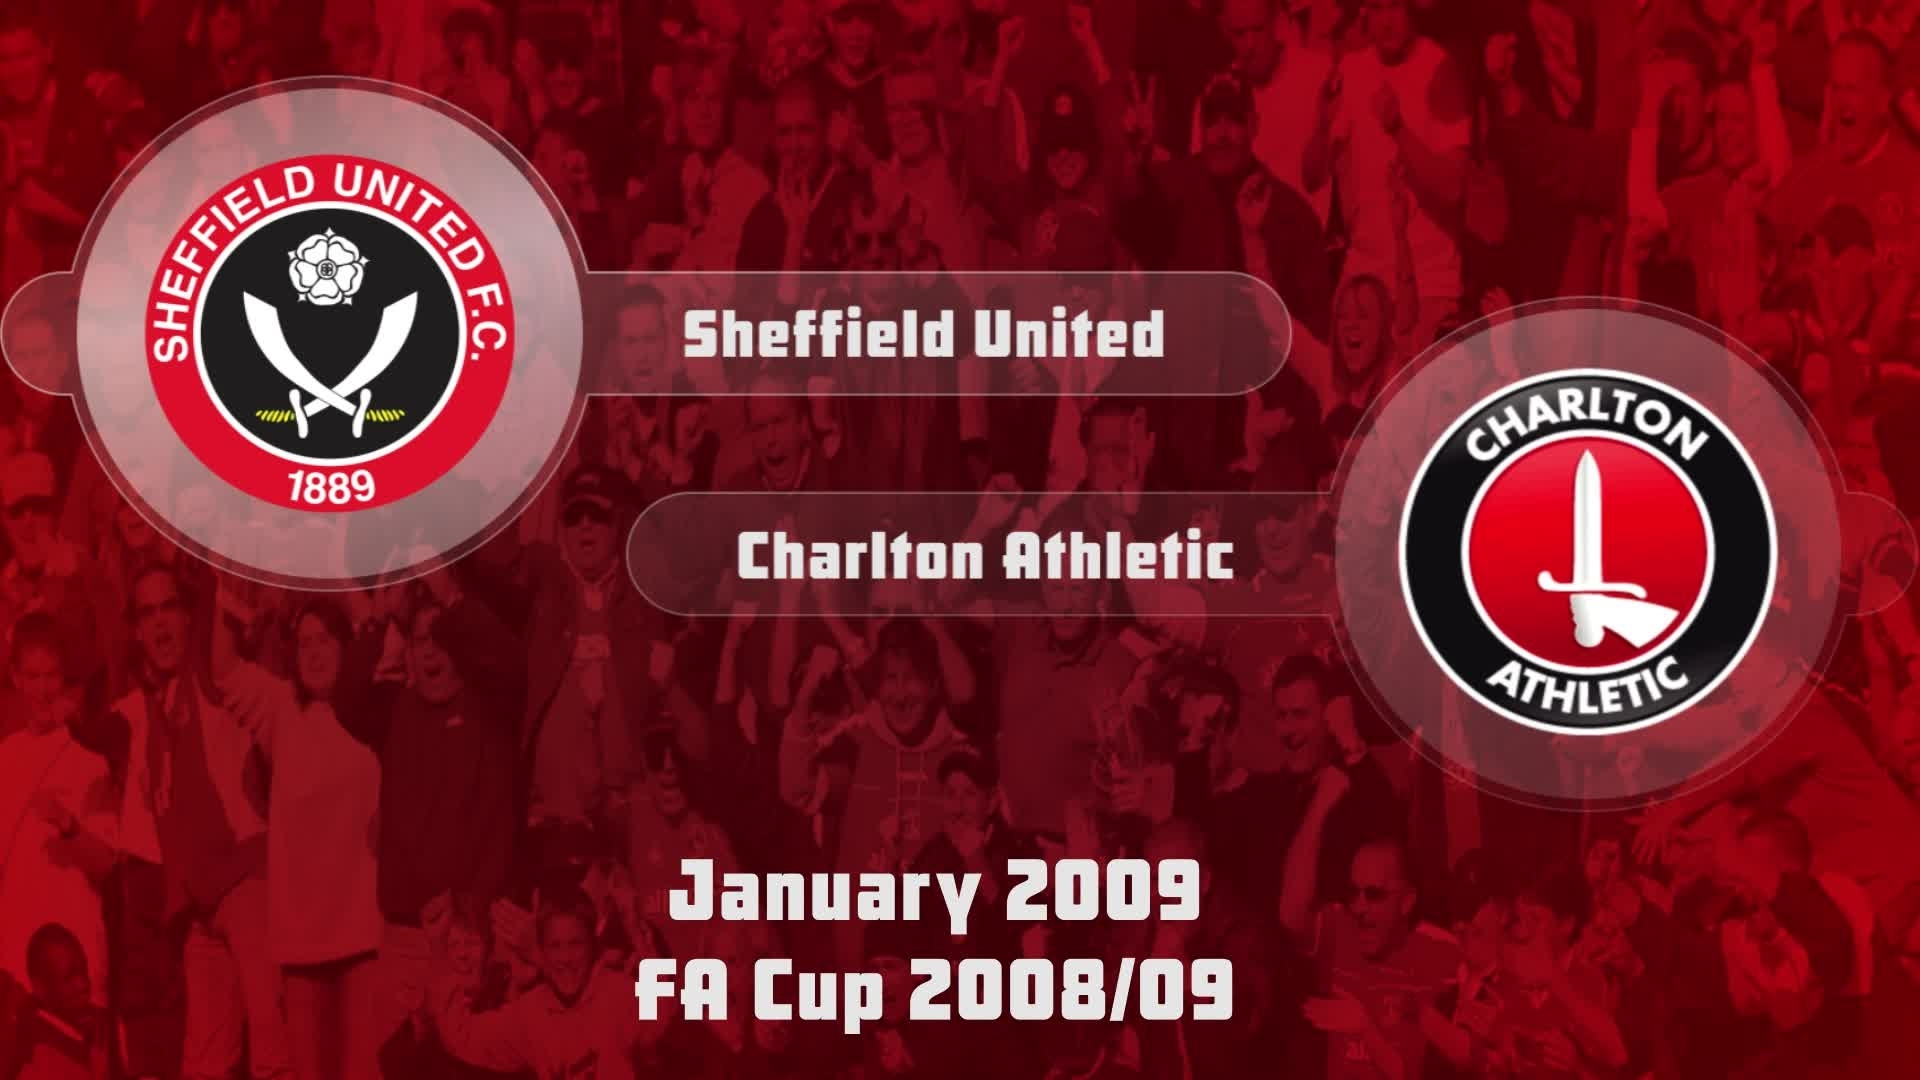 32 HIGHLIGHTS | Charlton 2 Sheff Utd 1 (Jan 2009)